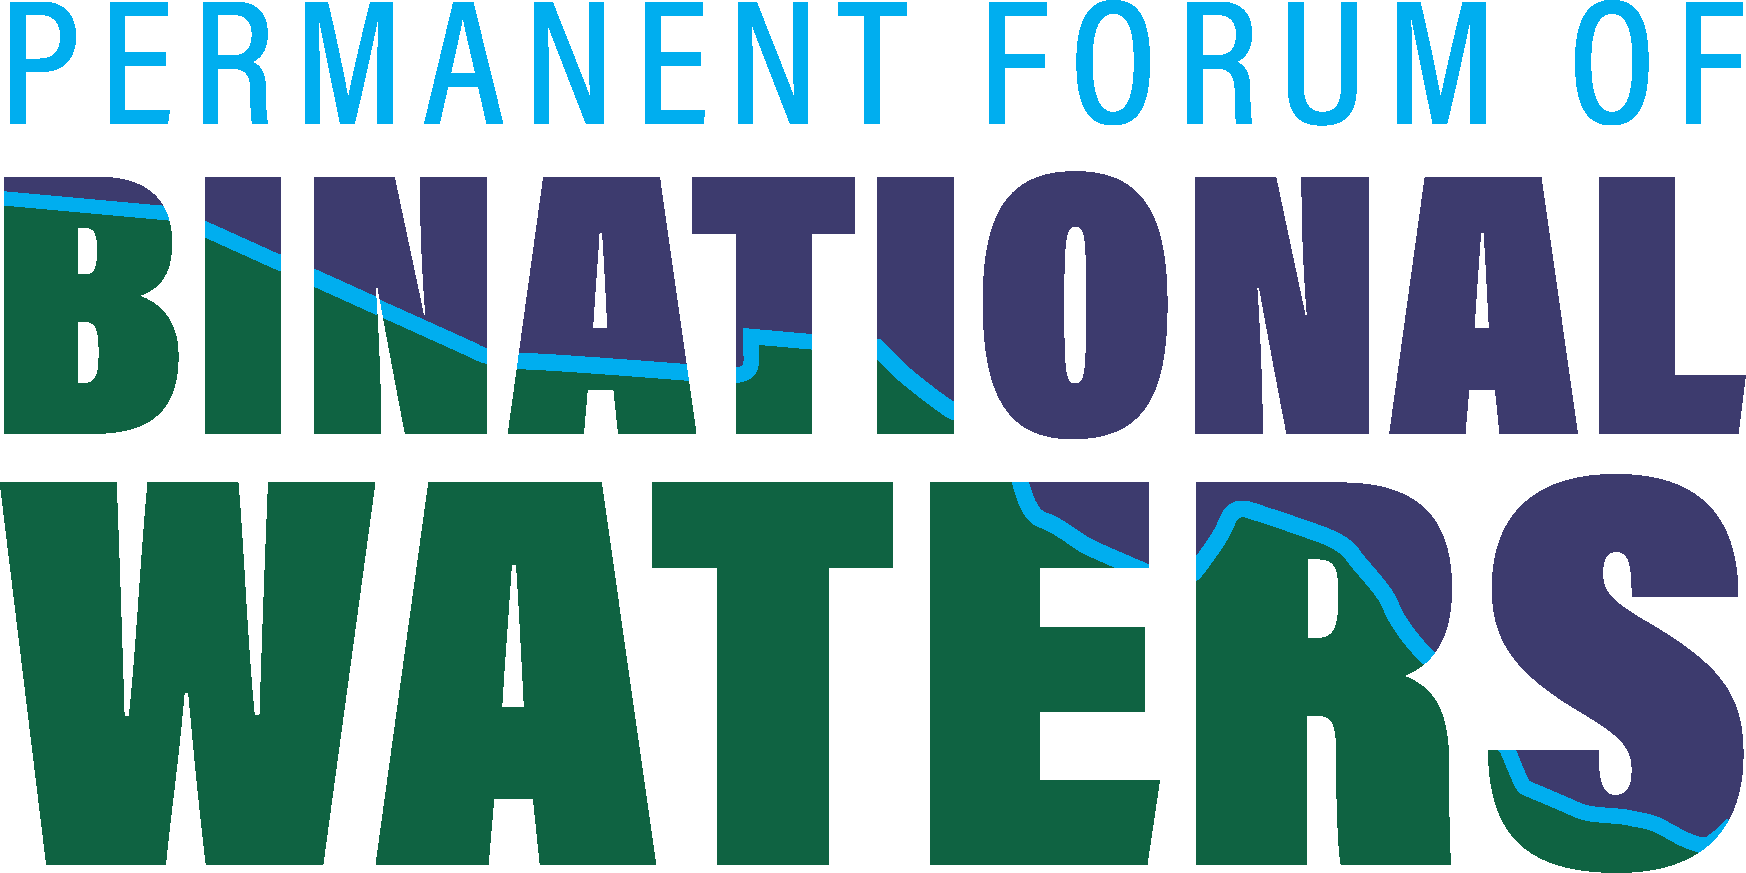 Permanent Forum of Binational Waters logo